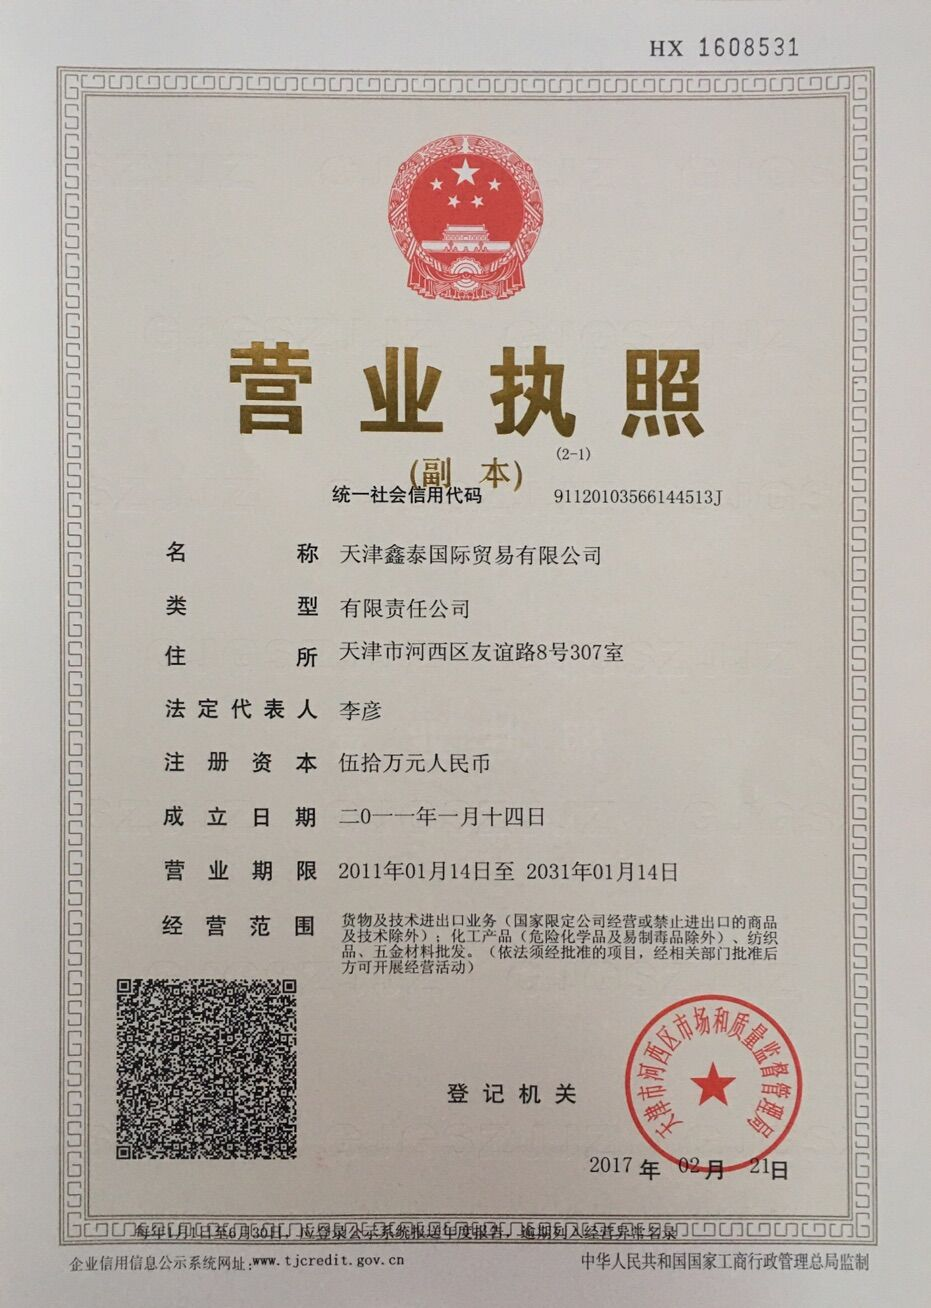 BUSINESS LICENSE of LEGAL ENTITY ( DUPLICATE)